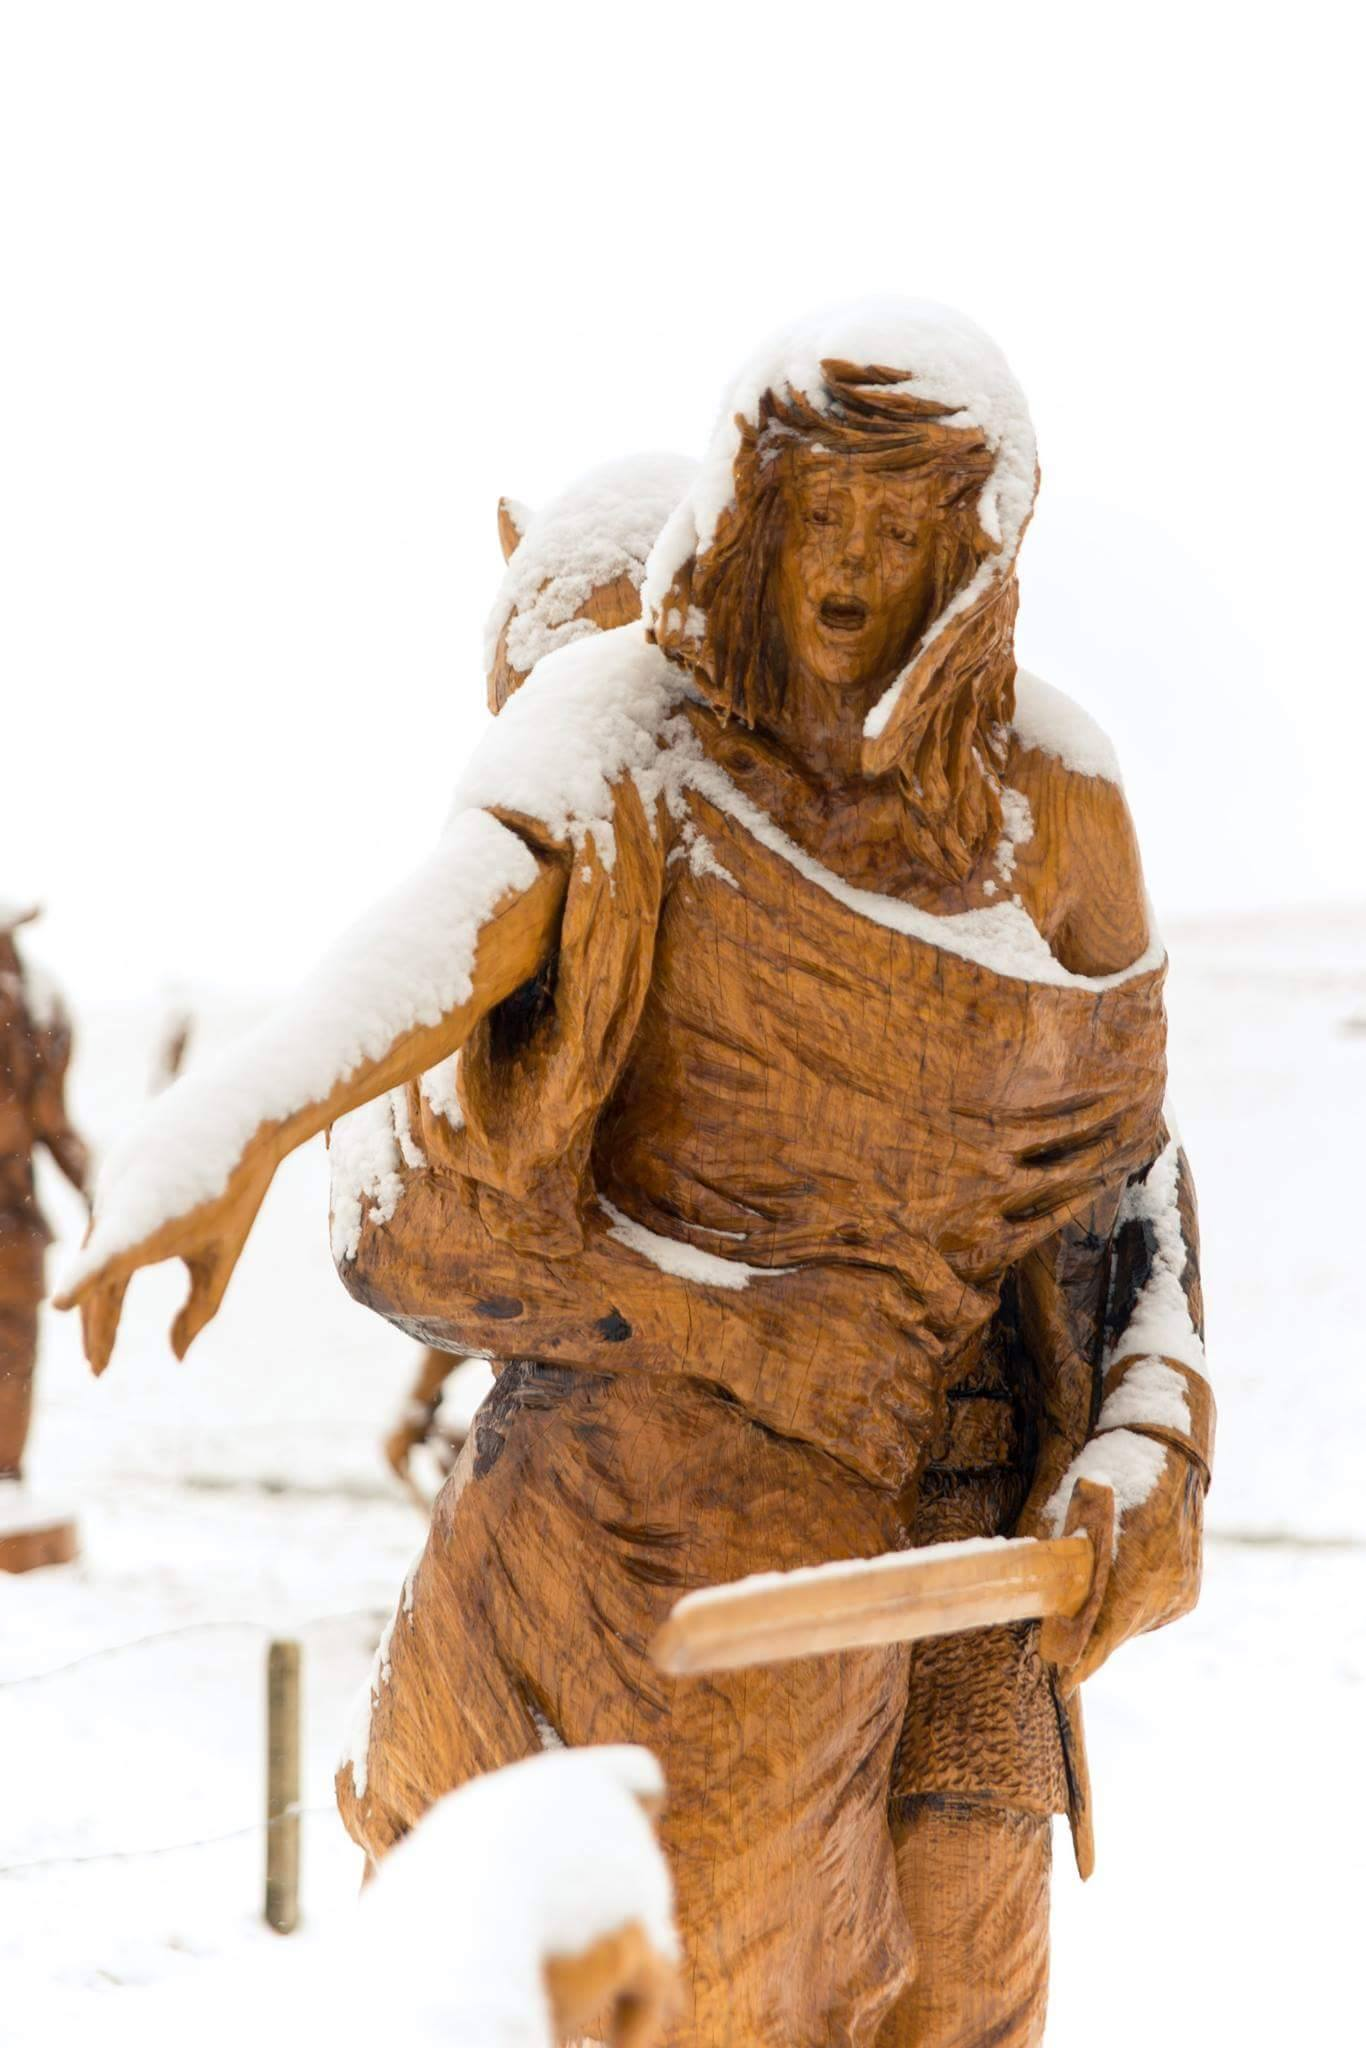 Sculptures in the snow: Viking raid by simon o'rourke. The photo shows a young woman being kidnapped by a viking. The sculptures are topped in snow and the entire landscape is also covered in snow.